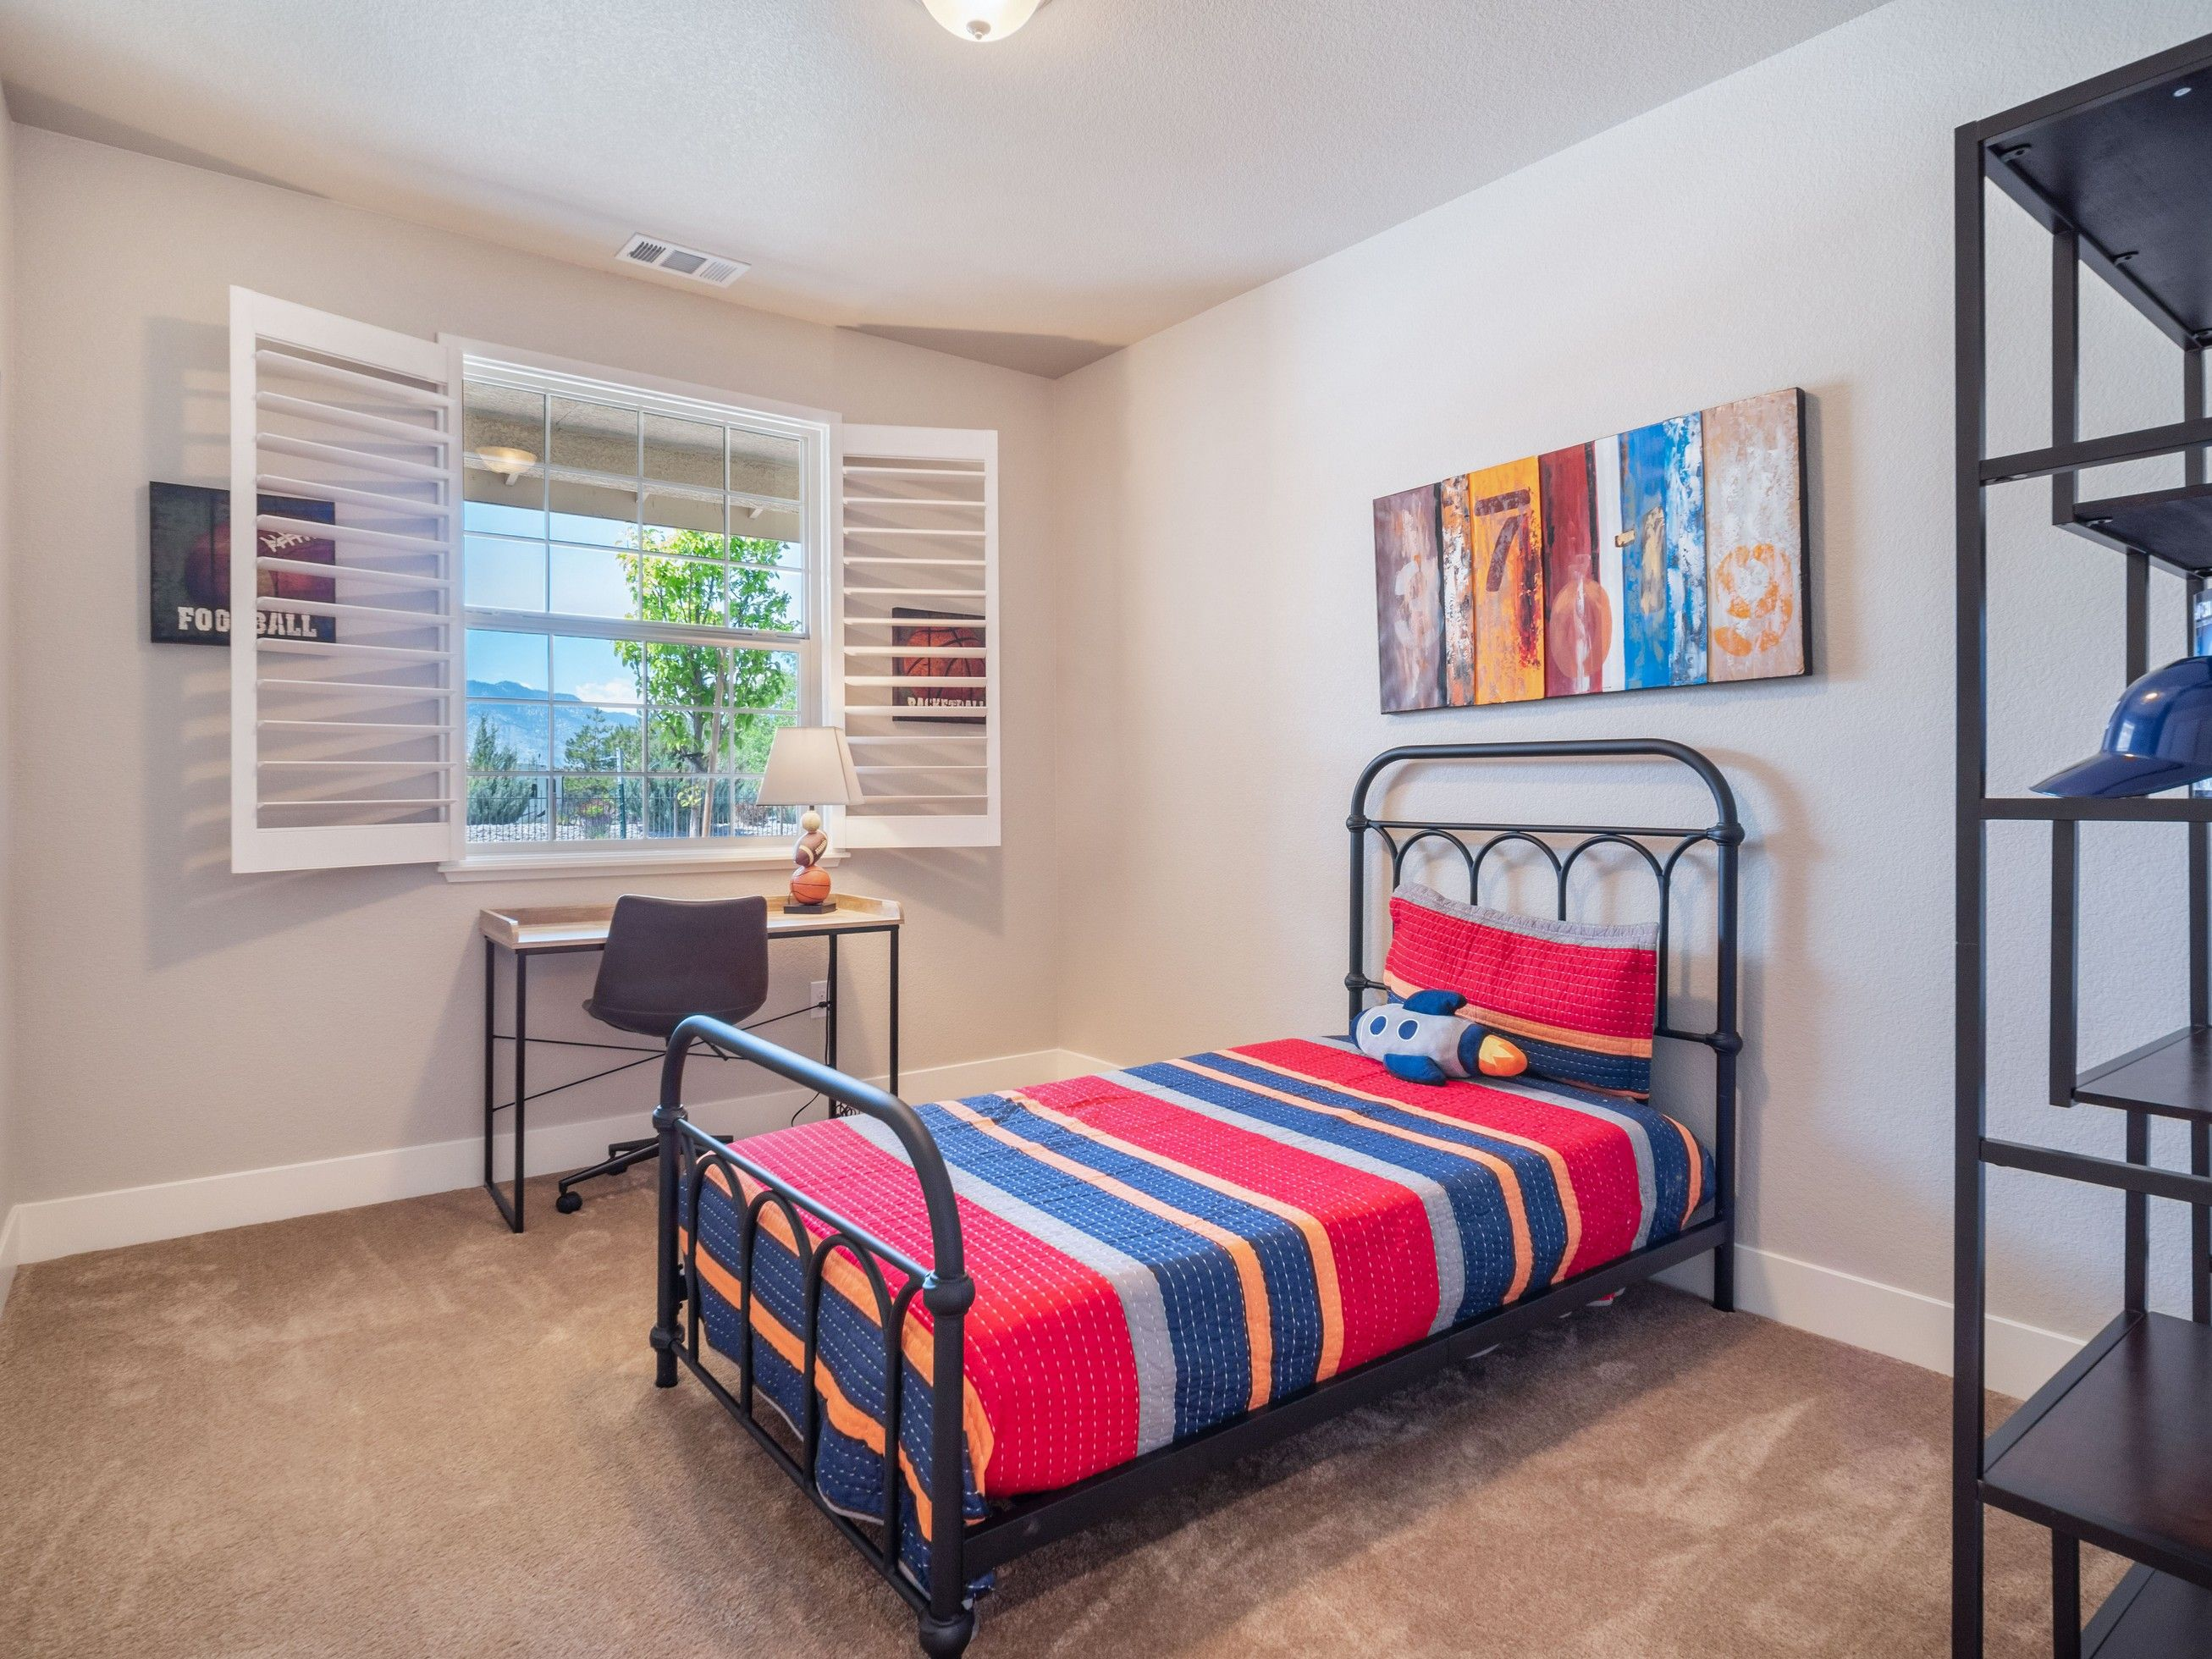 Bedroom featured in the Marigold By Carter Hill Homes in Reno, NV